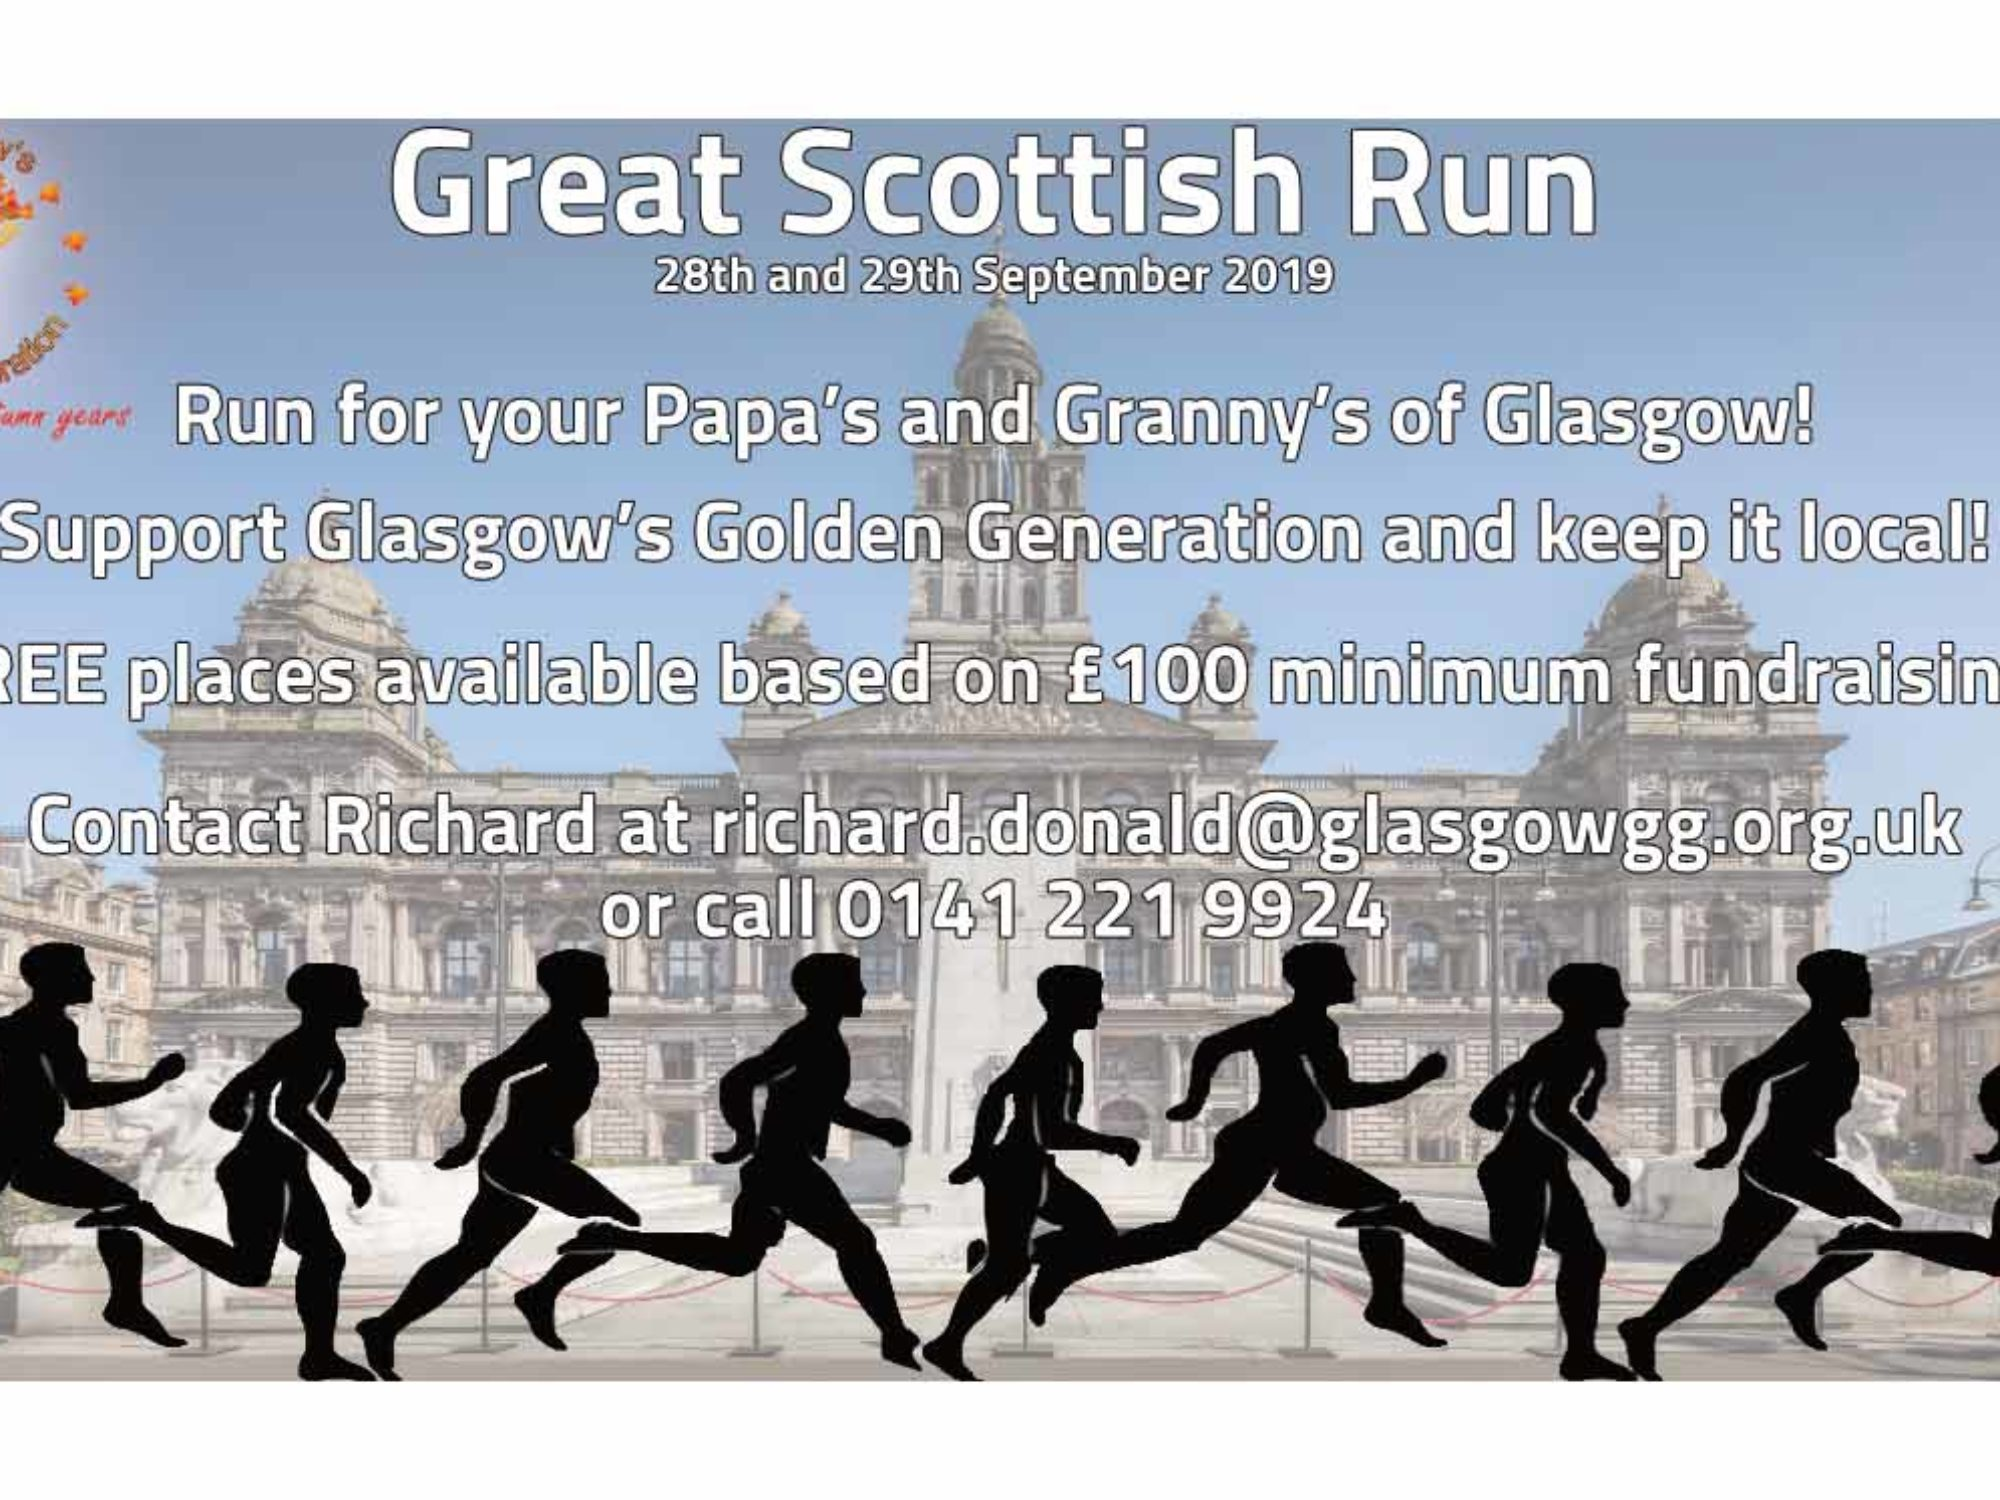 The Great Scottish Run! Have fun when you run and help your Gran as best you can! Free Places available